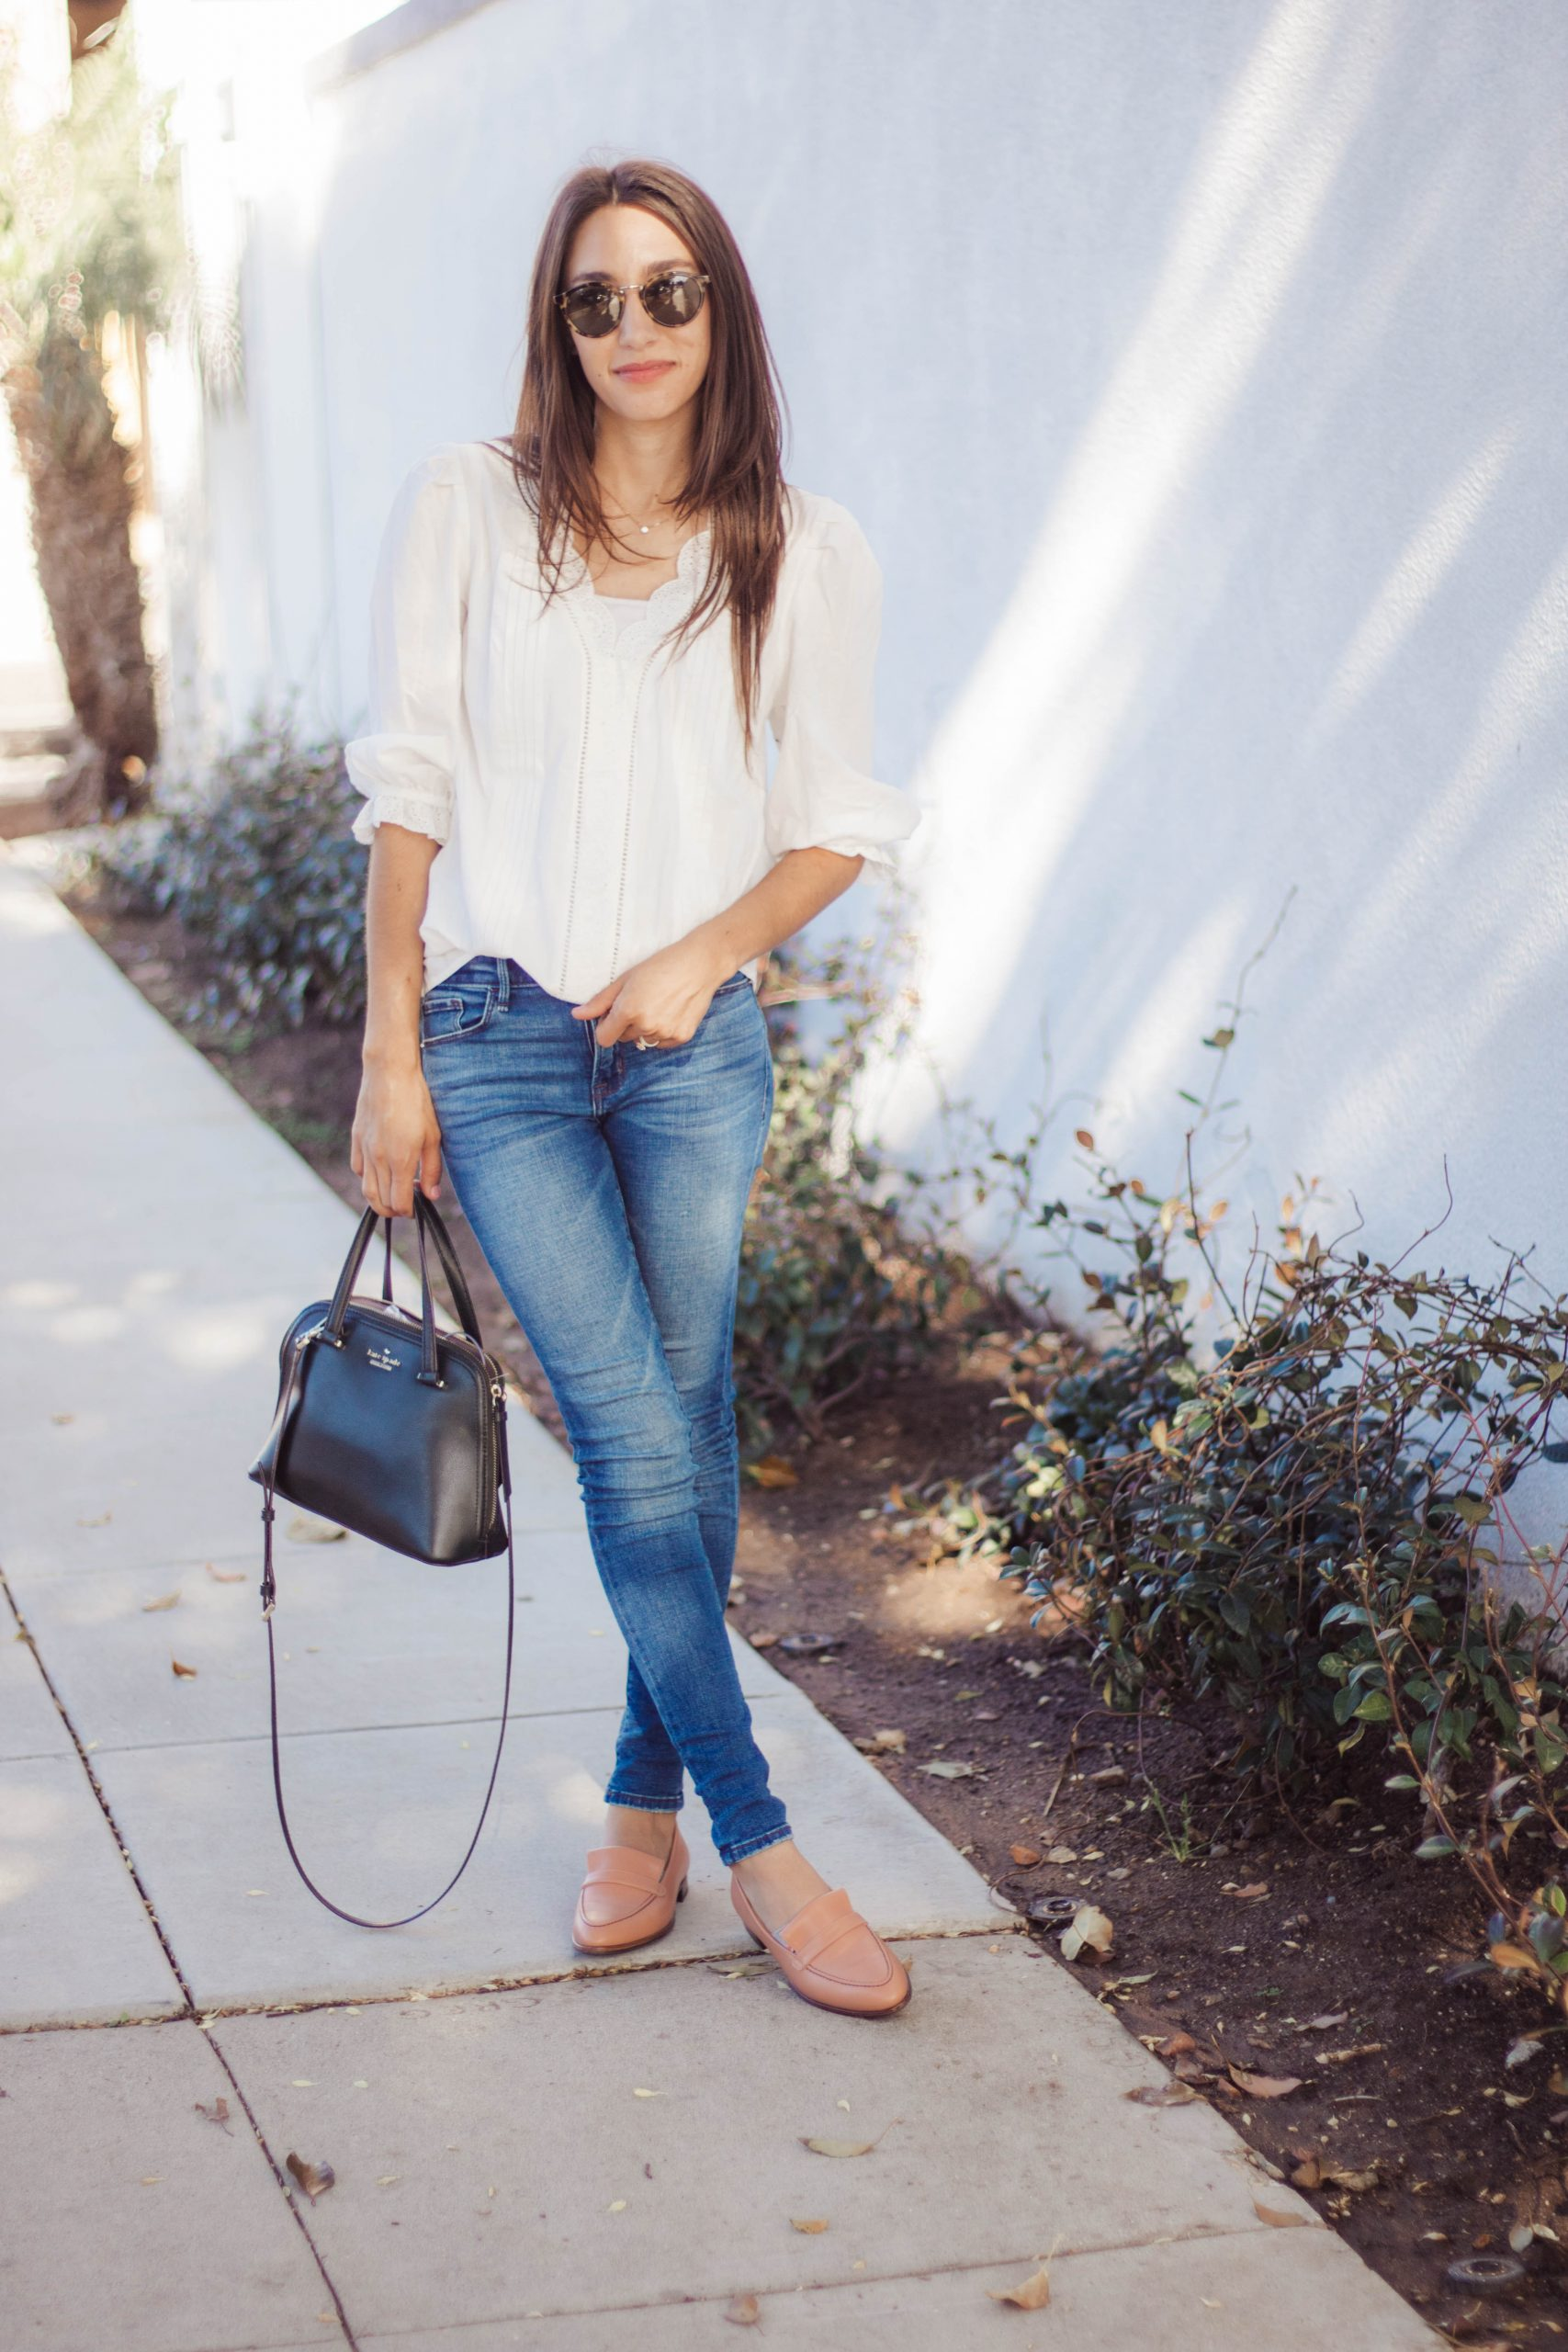 classic white button up and jeans